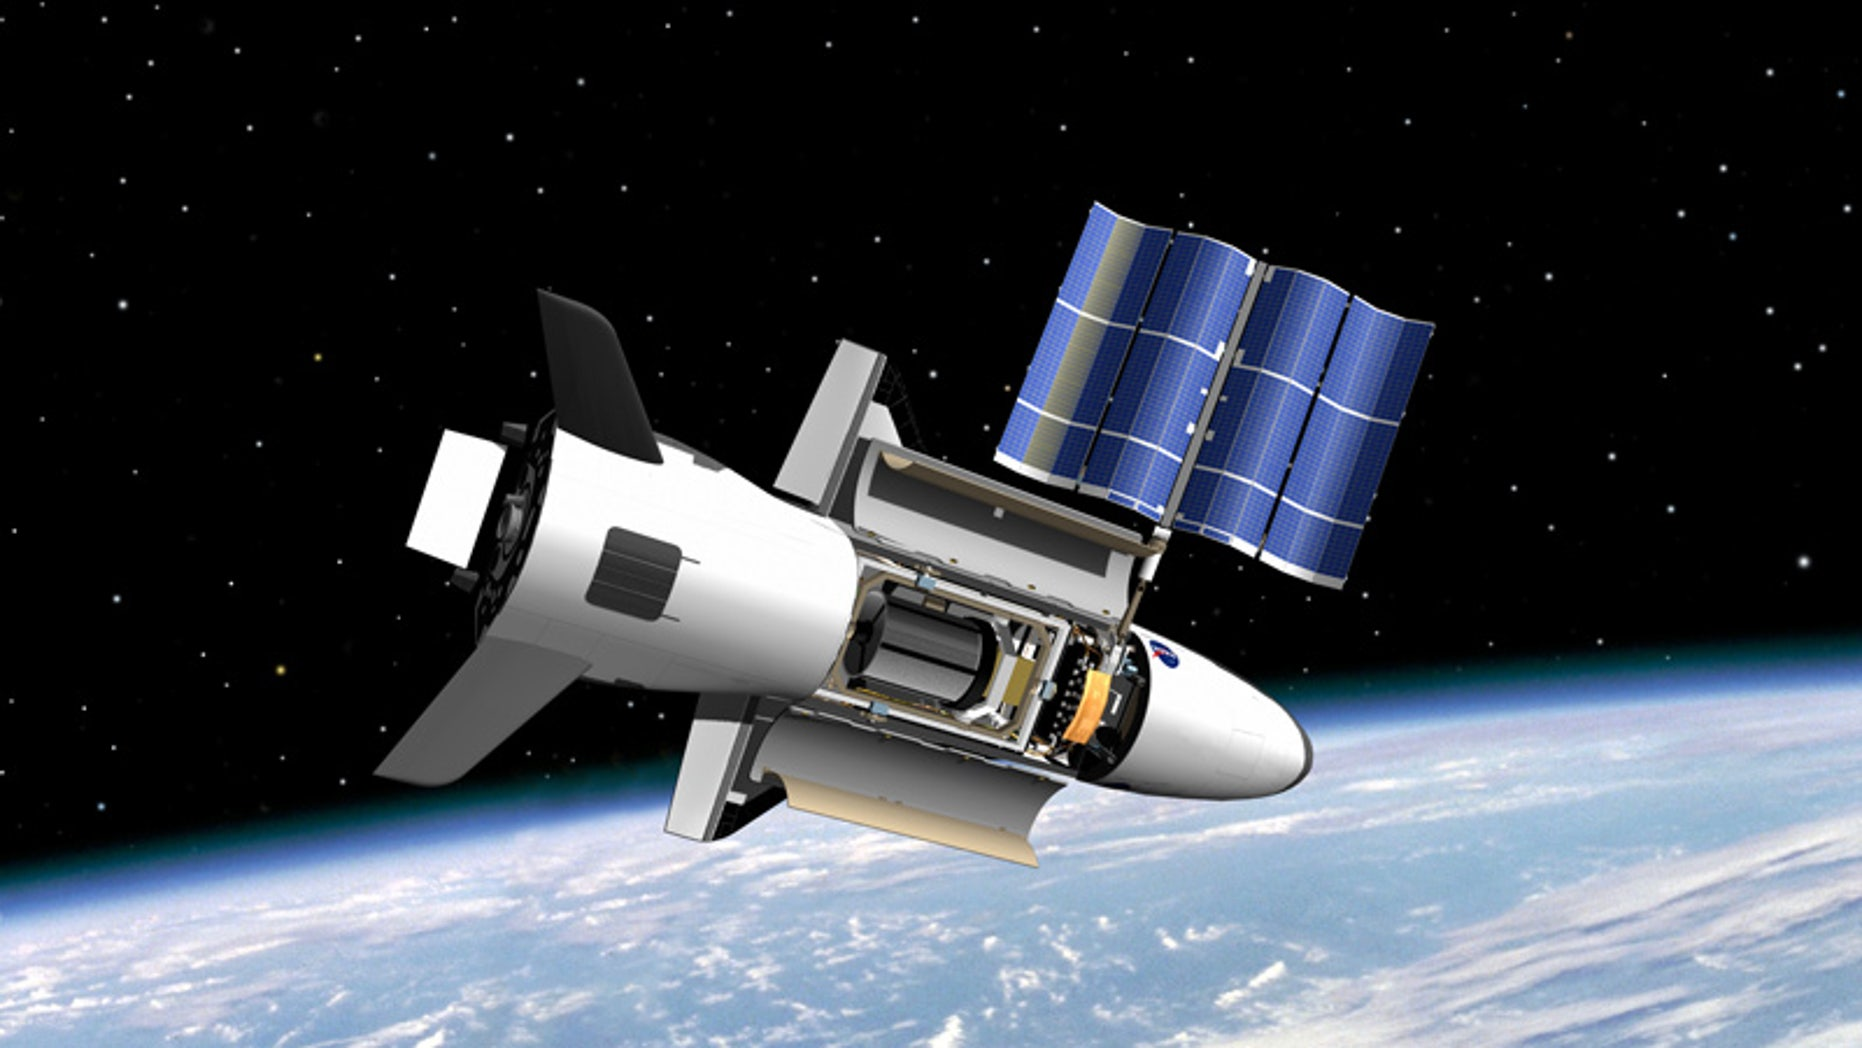 An artist's illustration of the U.S. Air Force's X-37B space plane in orbit.